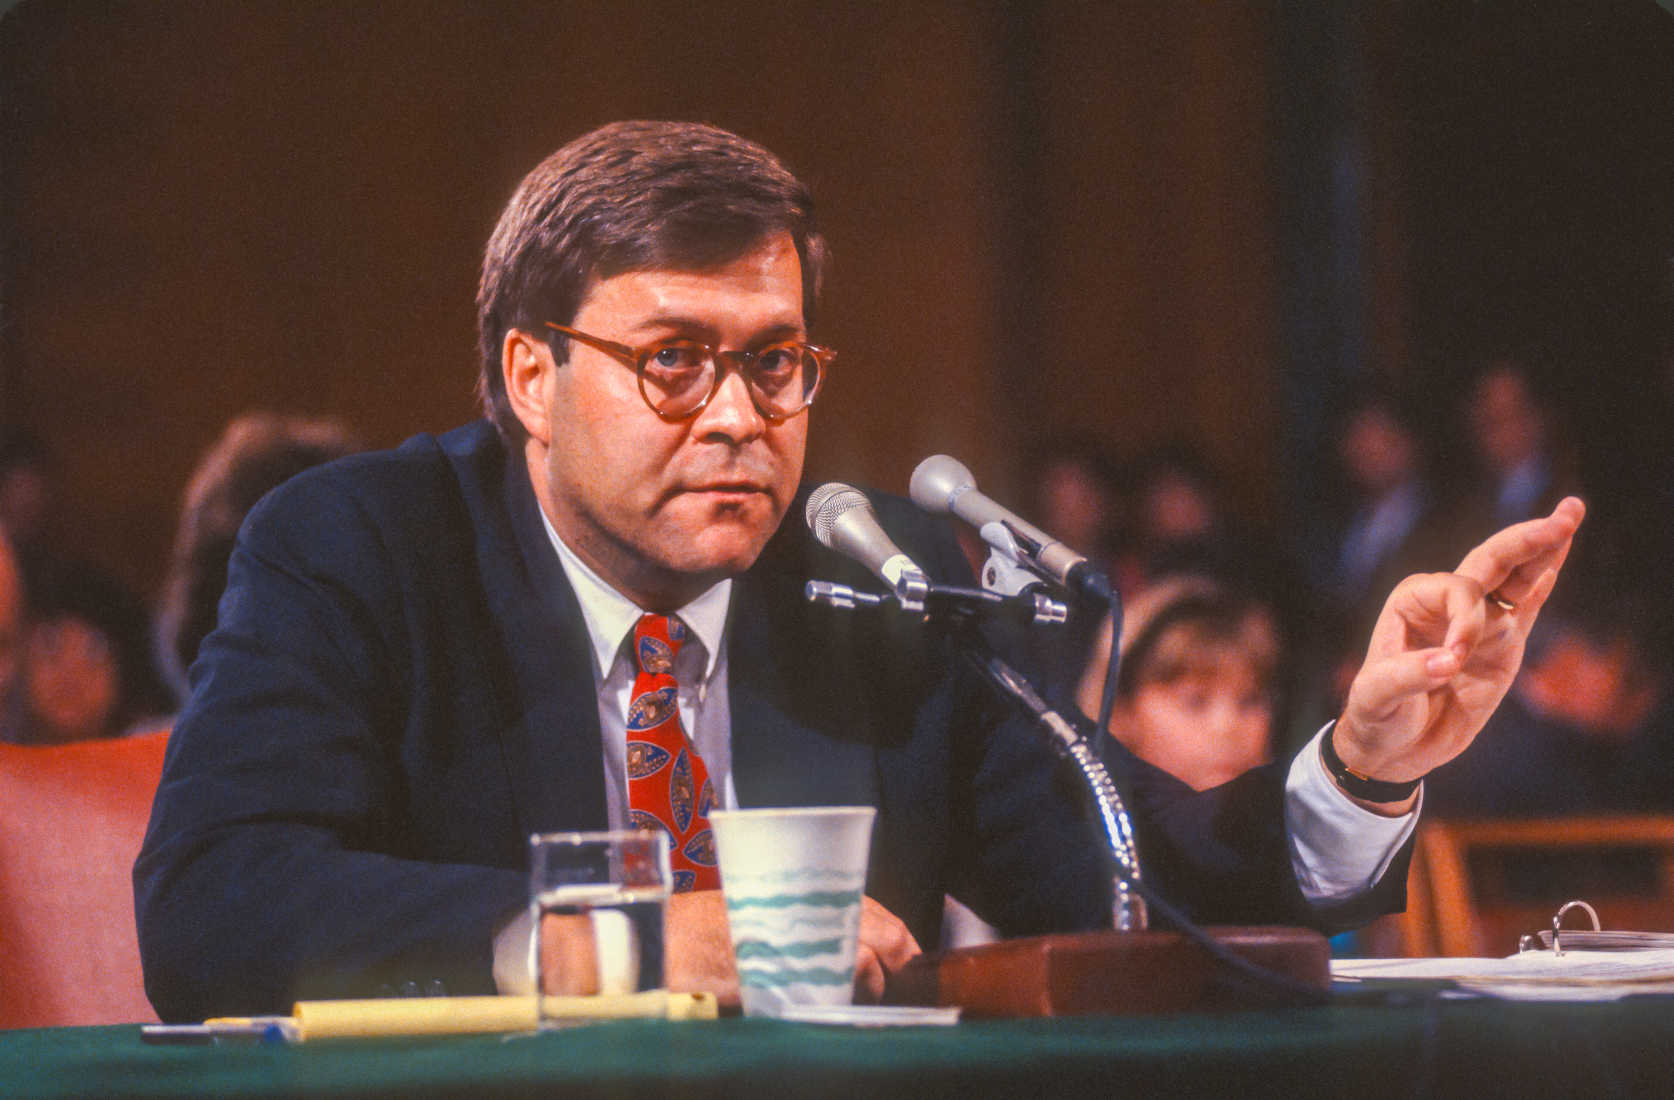 Attorney General Nominee William Barr Voices Support for Gun Confiscation